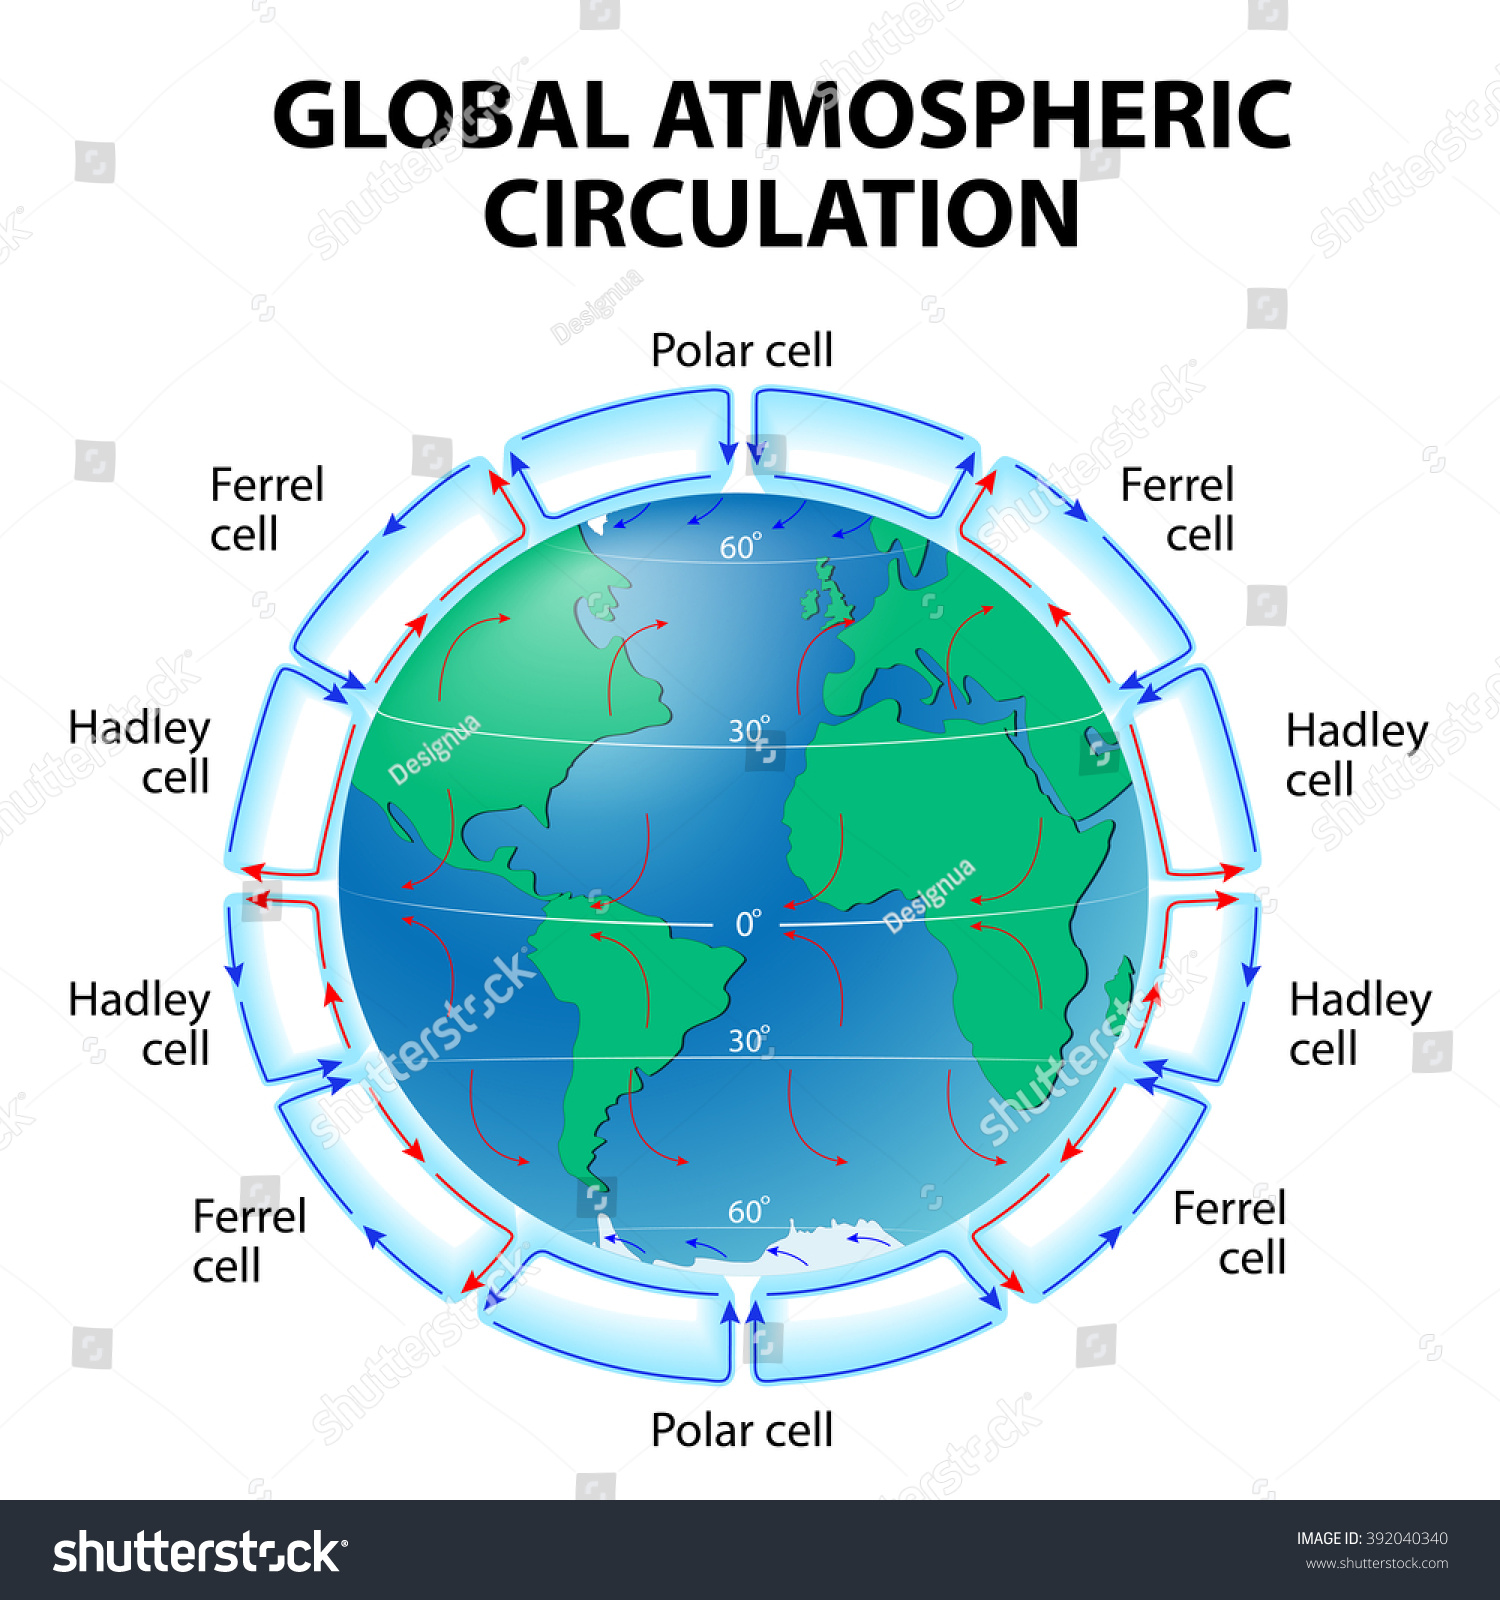 Circulation Atmosphere Global Circulation Patterns